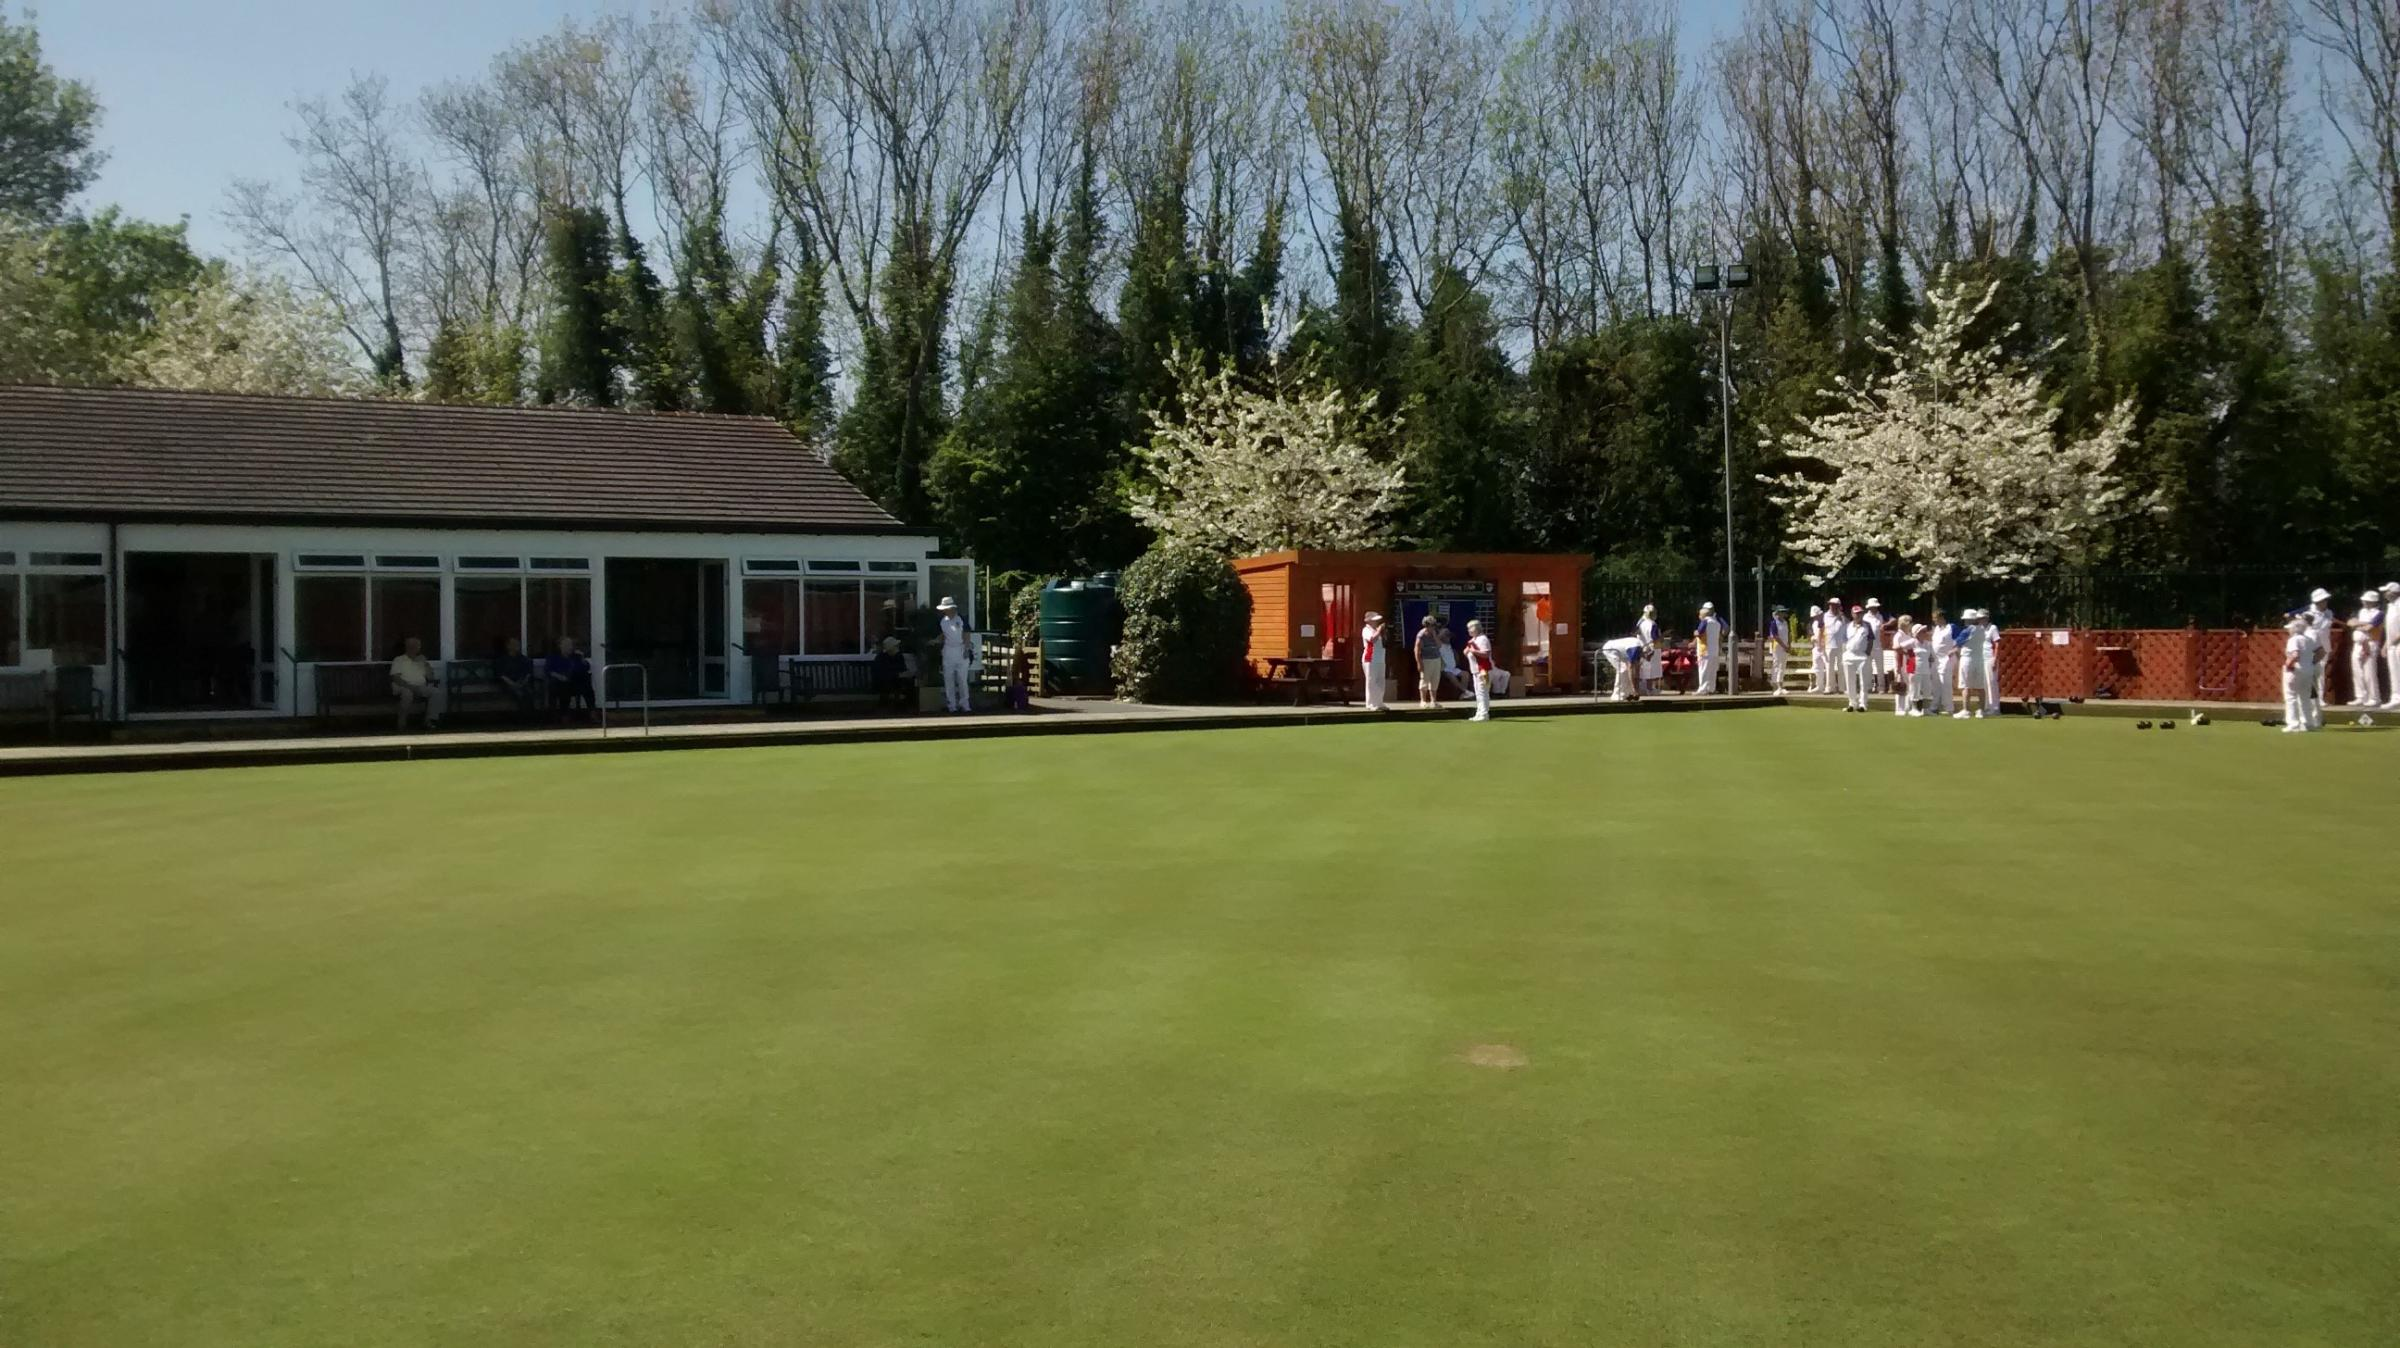 St Martins Bowls Club welcomes newcomers to the sport